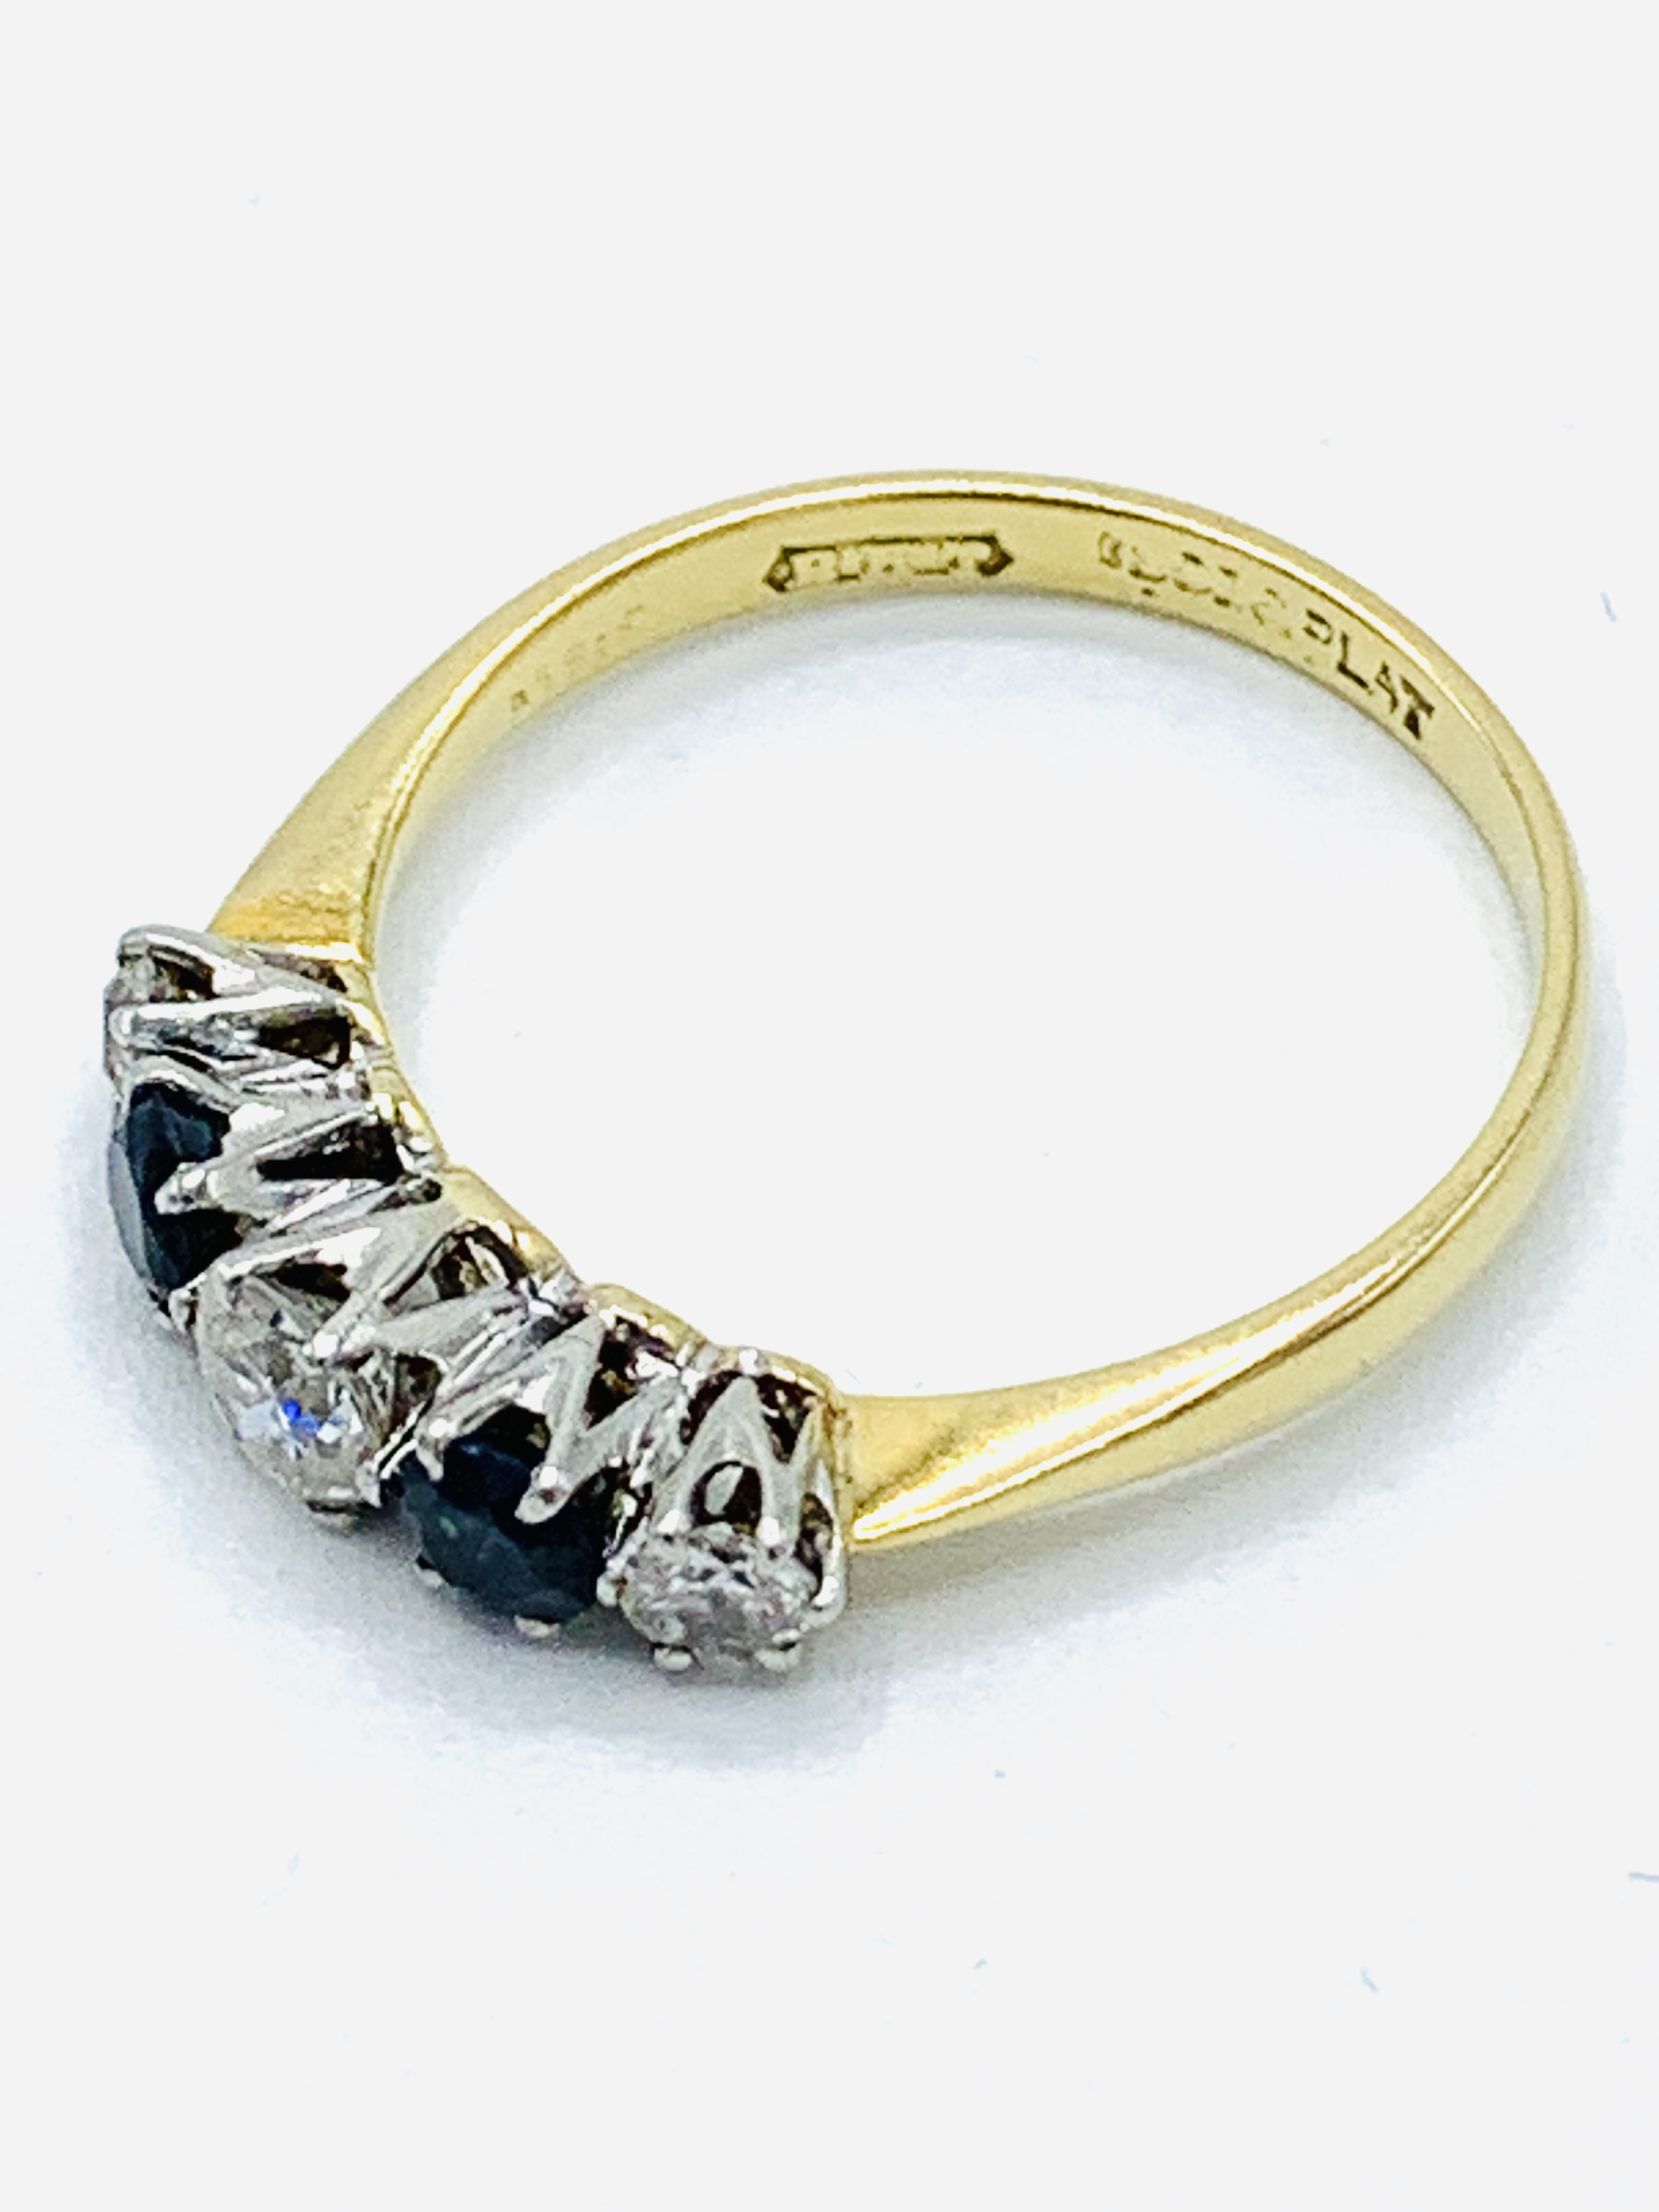 18ct gold and platinum claw set ring of 3 diamonds and 2 sapphires - Image 3 of 4